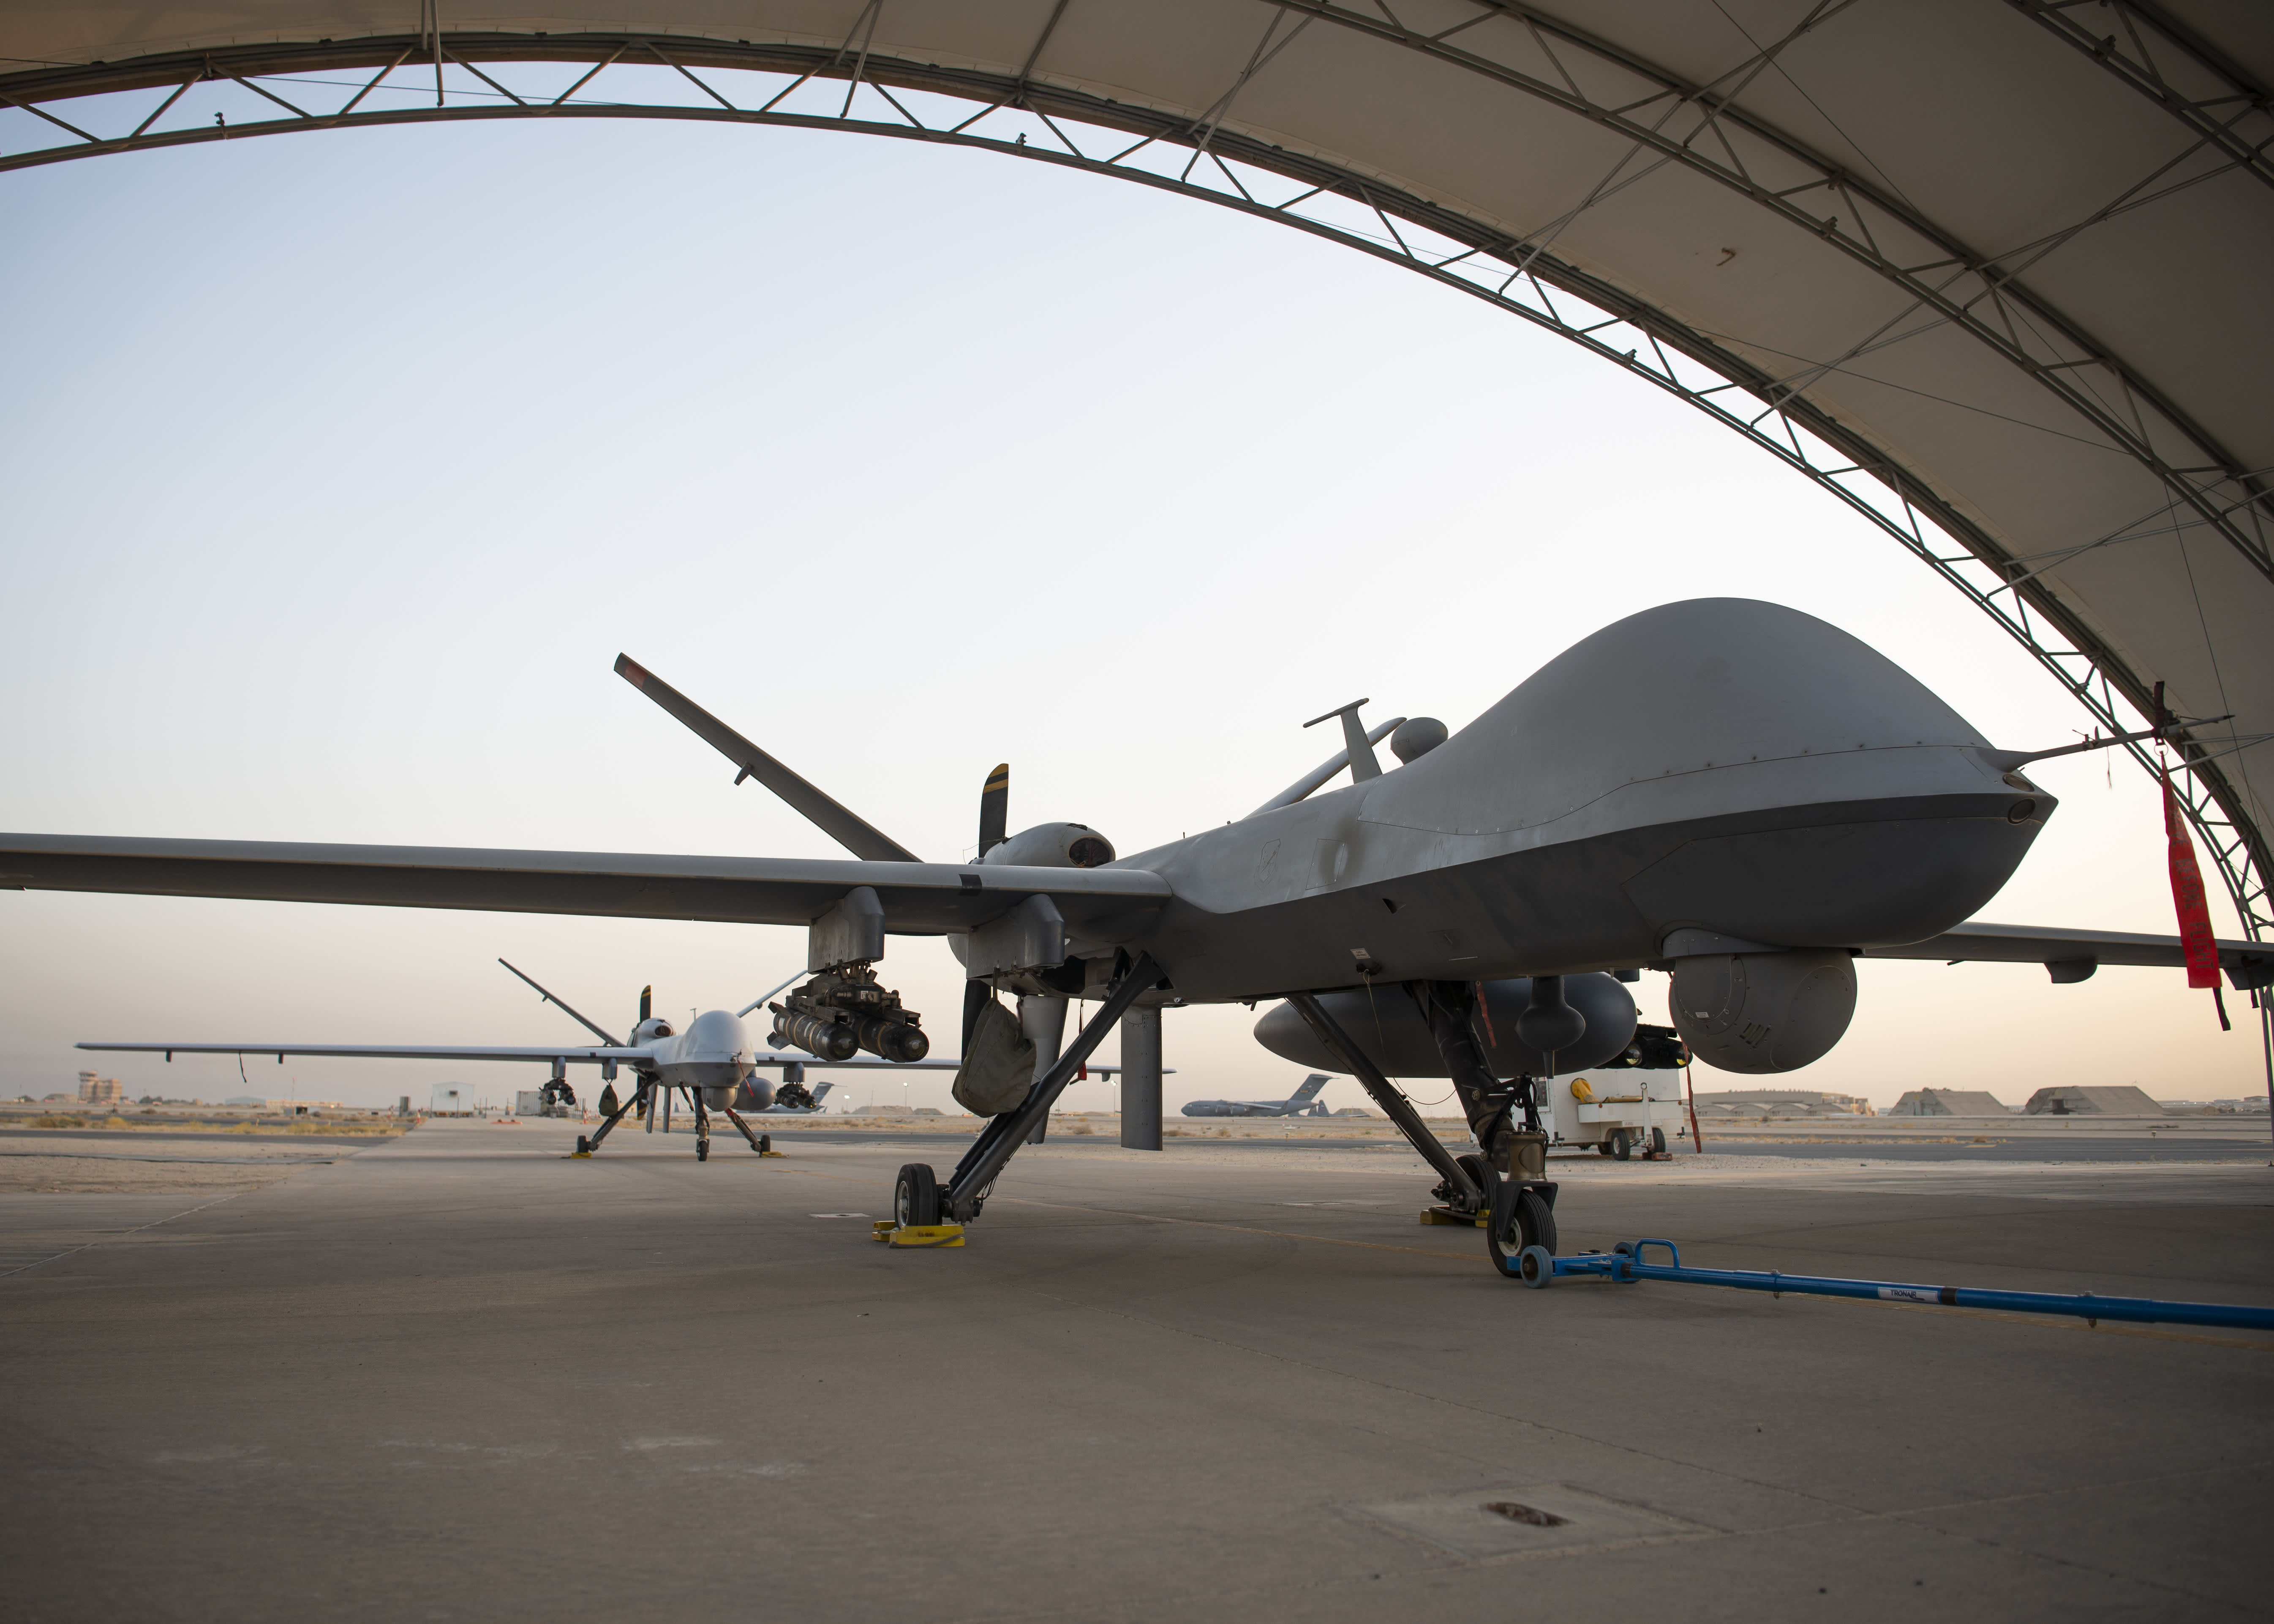 UAE to get its first Reaper drones, clinches F-35 deal as Trump administration pushes through final arms sales